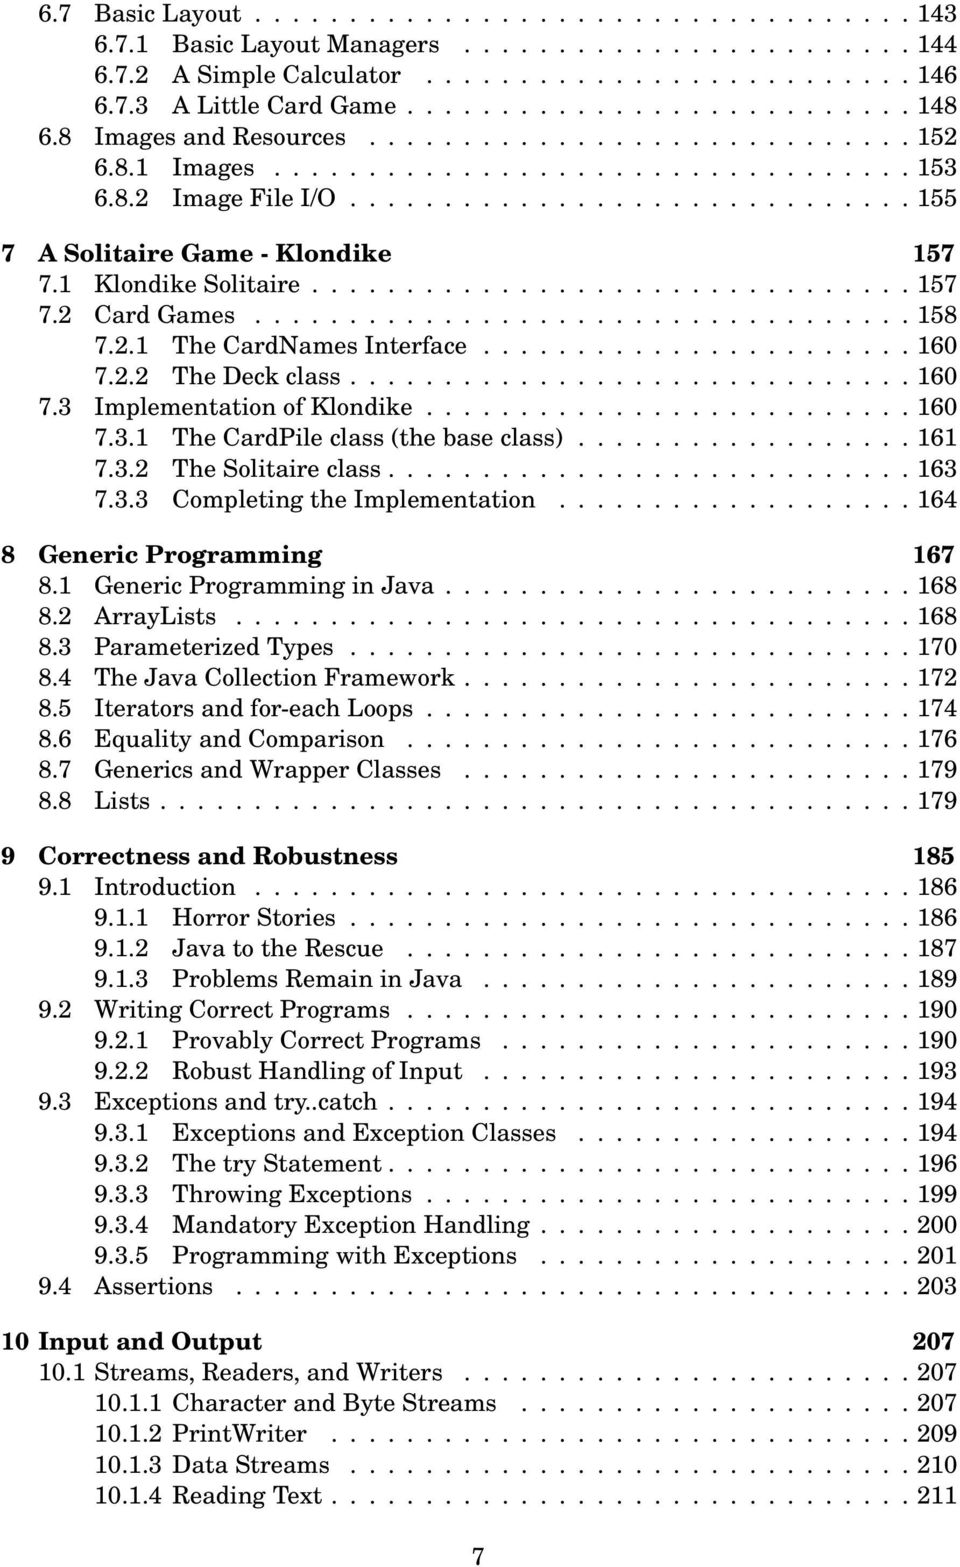 history of object oriented programming pdf